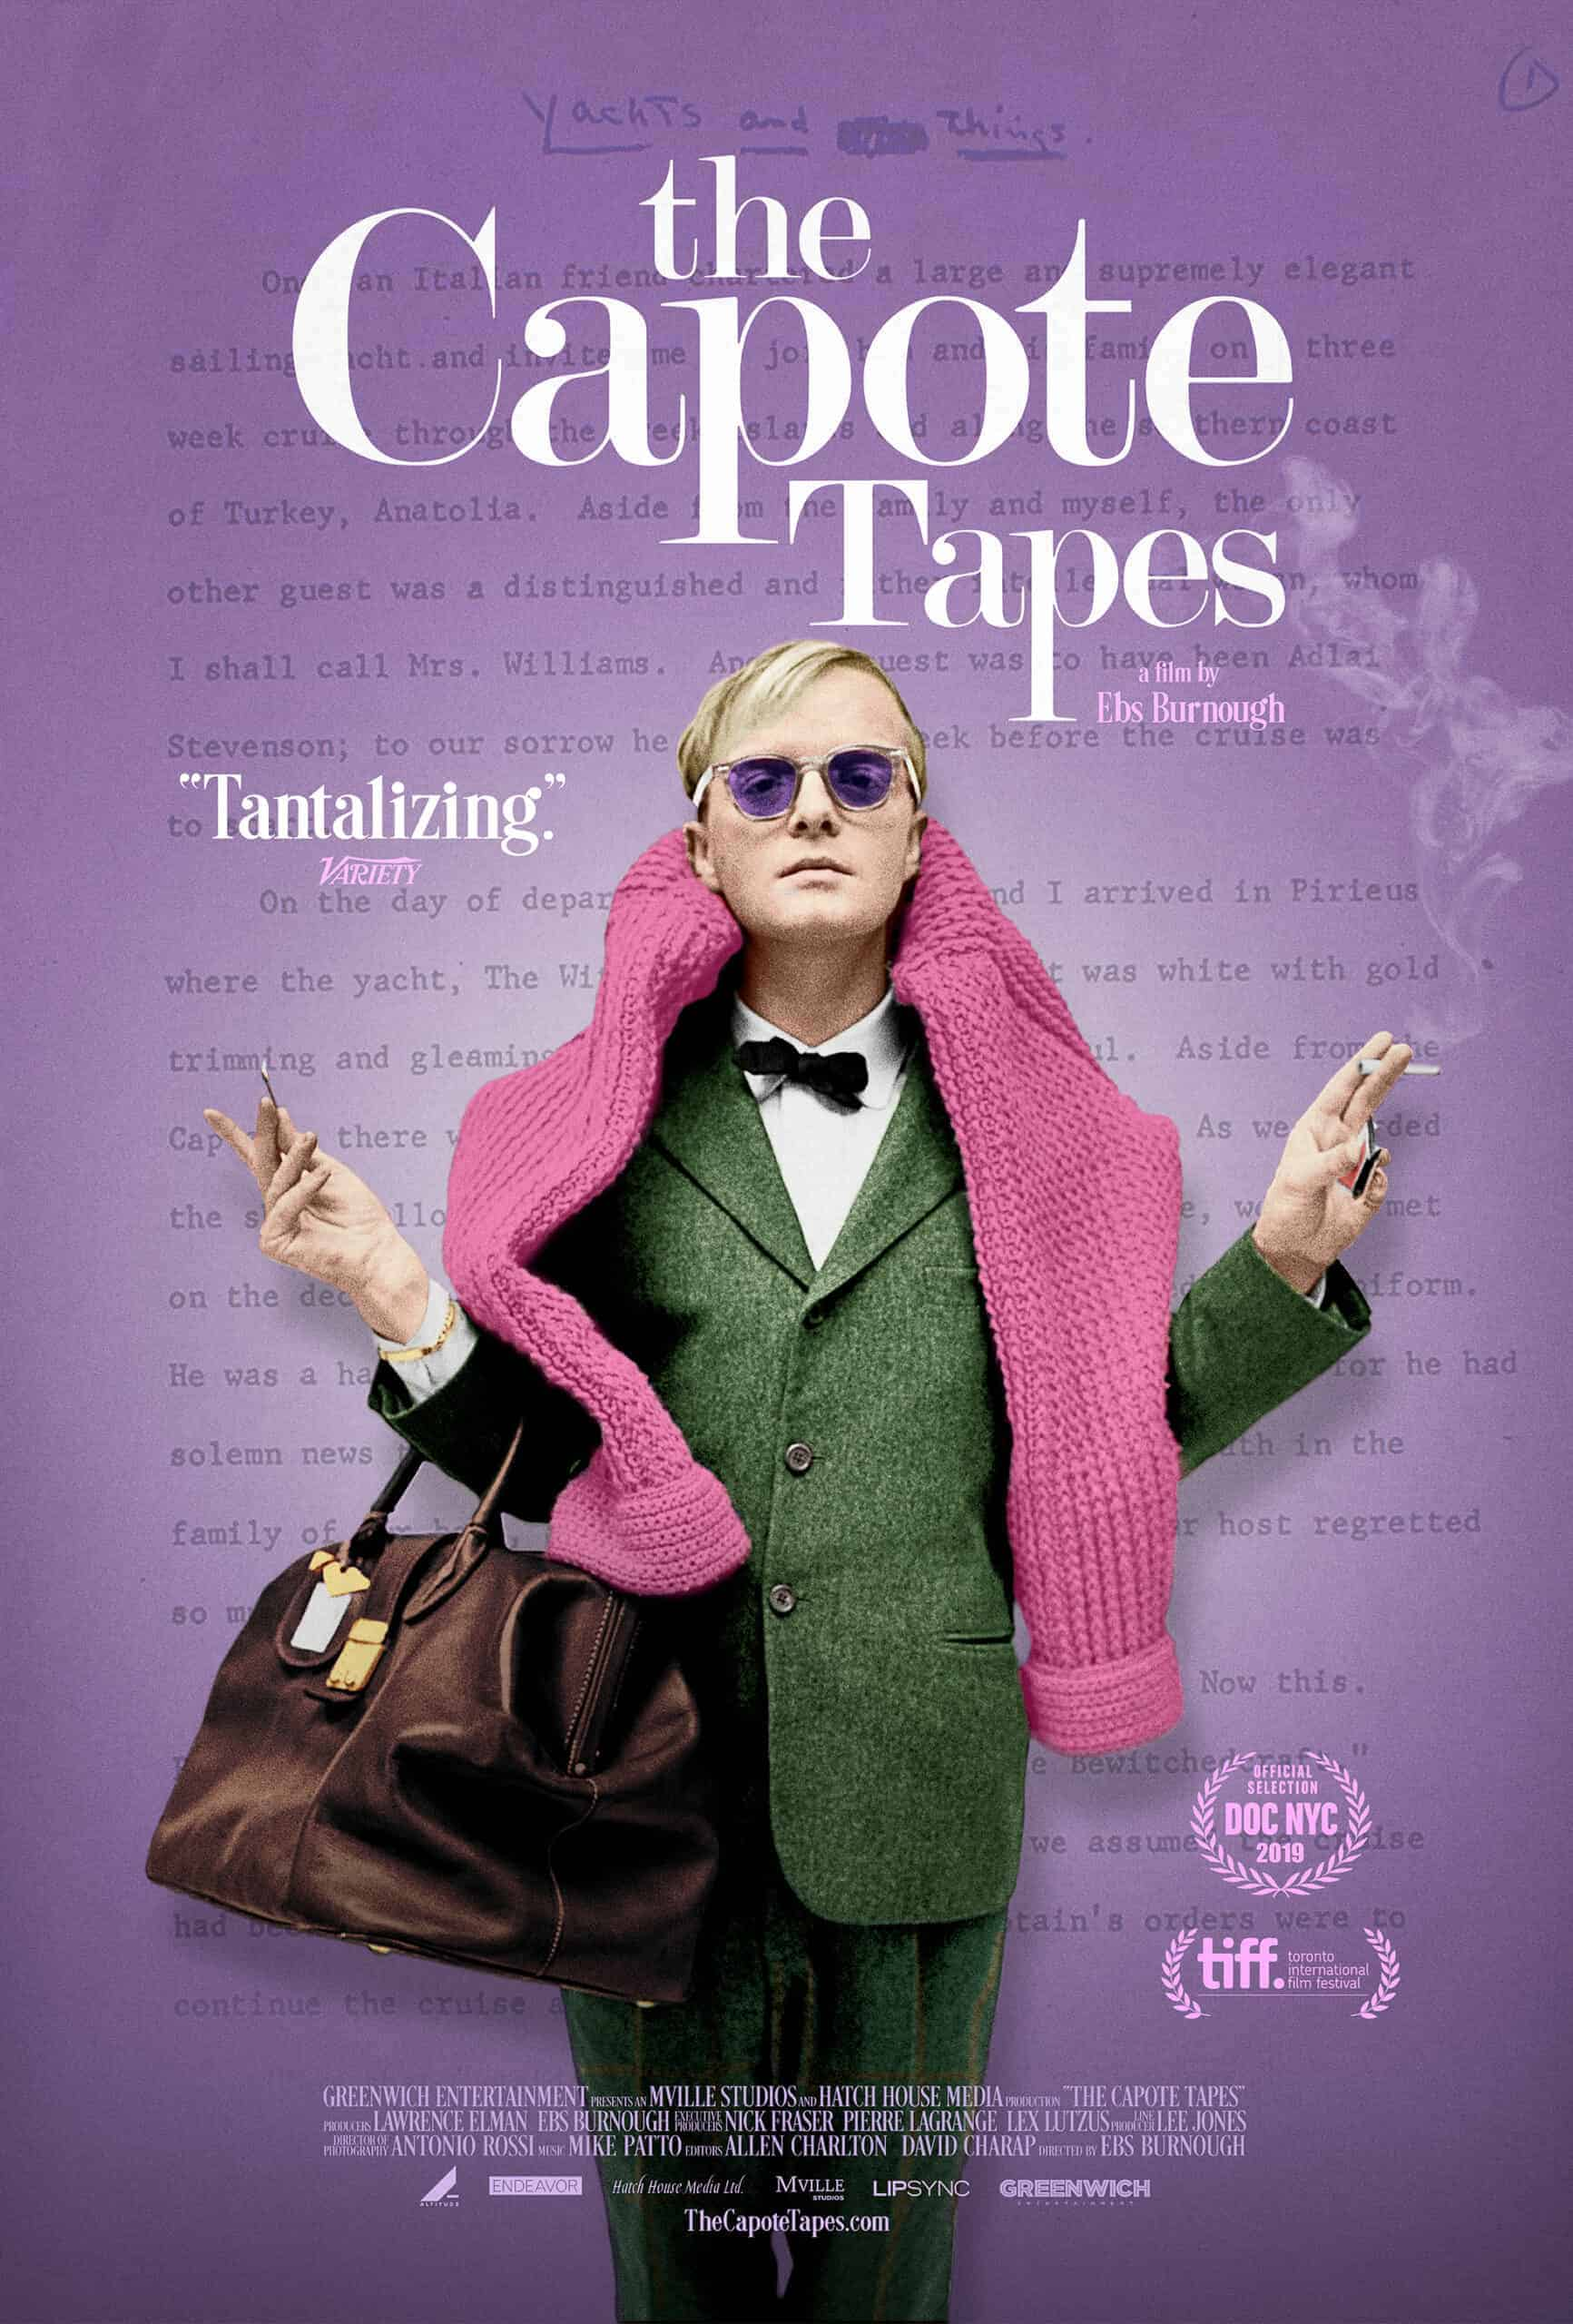 Poster showing Capote wearing green suit, sunglasses, and a pink sweater